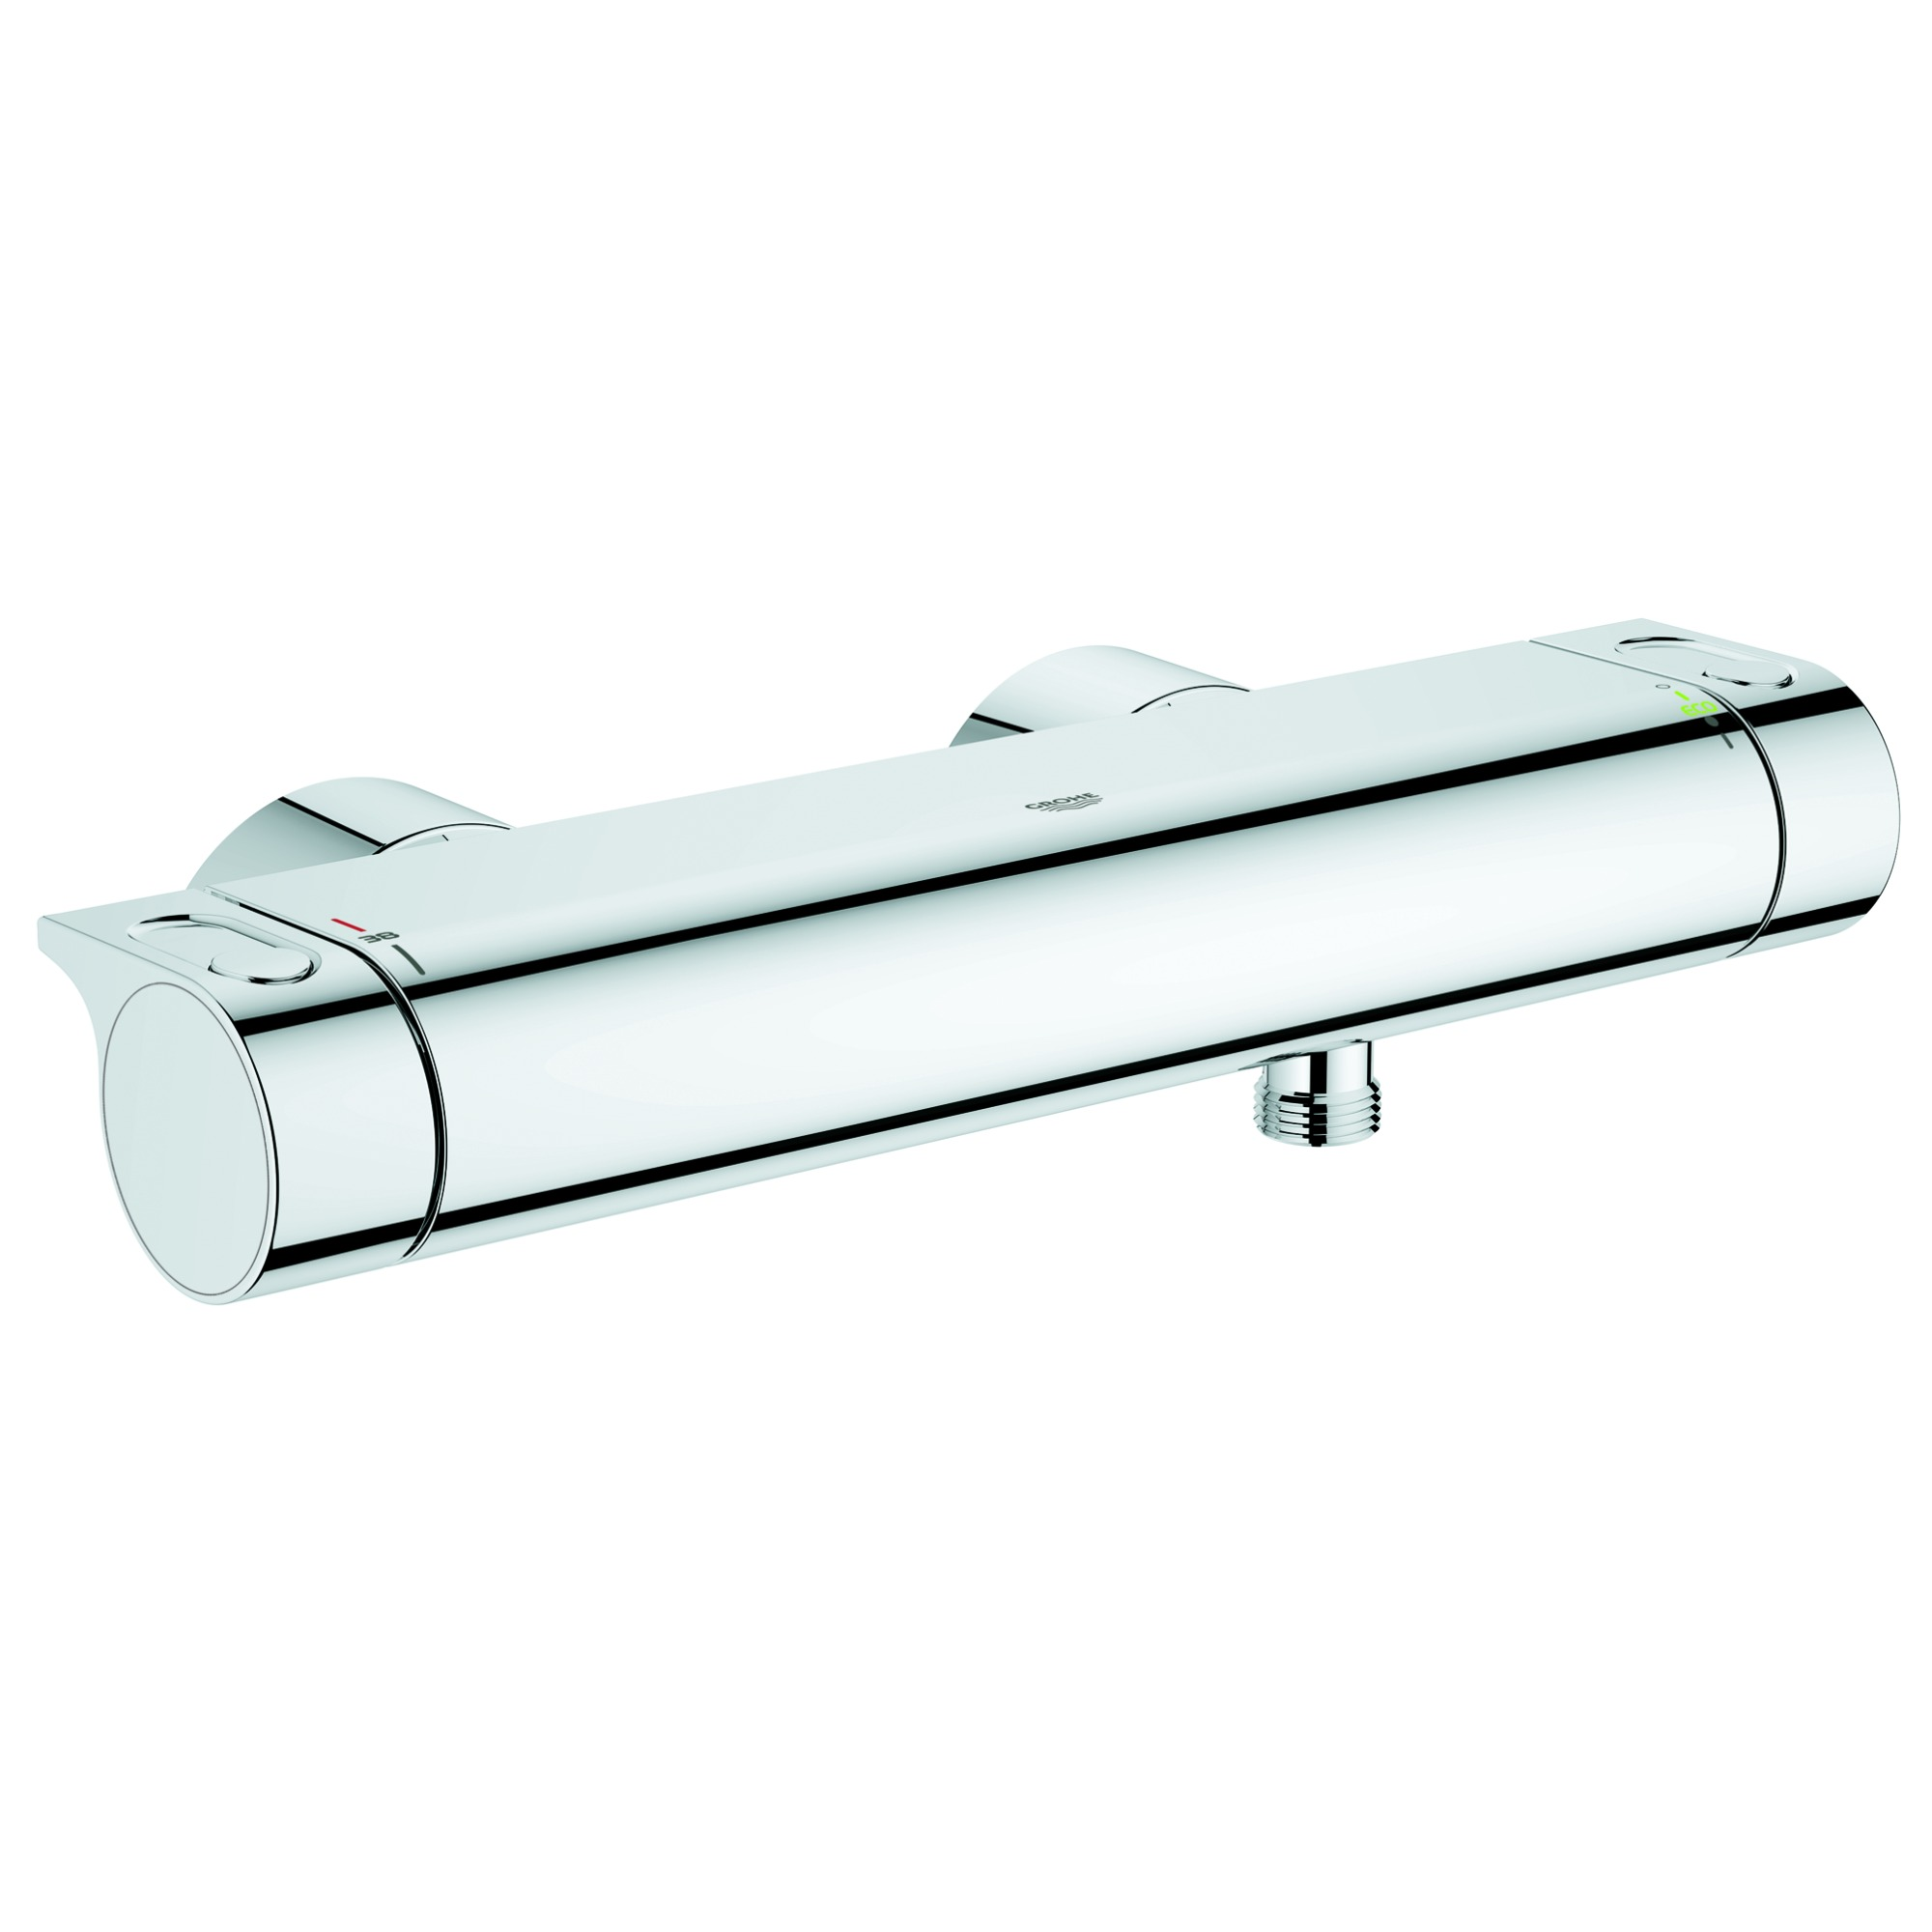 Grohe New Grohtherm 2000 douche thermostaat kraan 15mm chroom 34169001